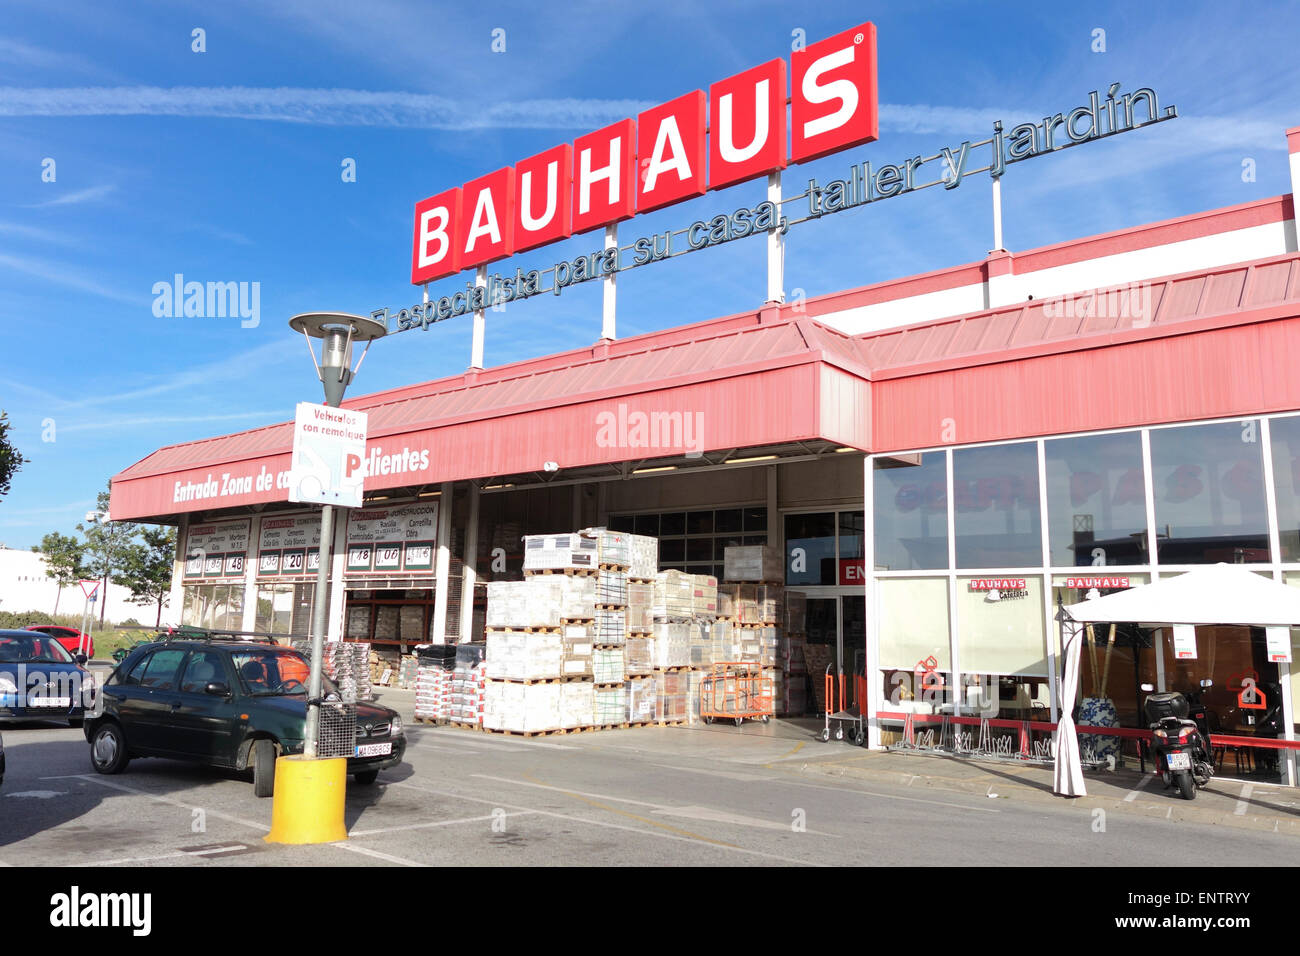 Entrance Bauhaus retail chain store, DIY products, construction, building, Malaga, Andalusia, Spain. - Stock Image